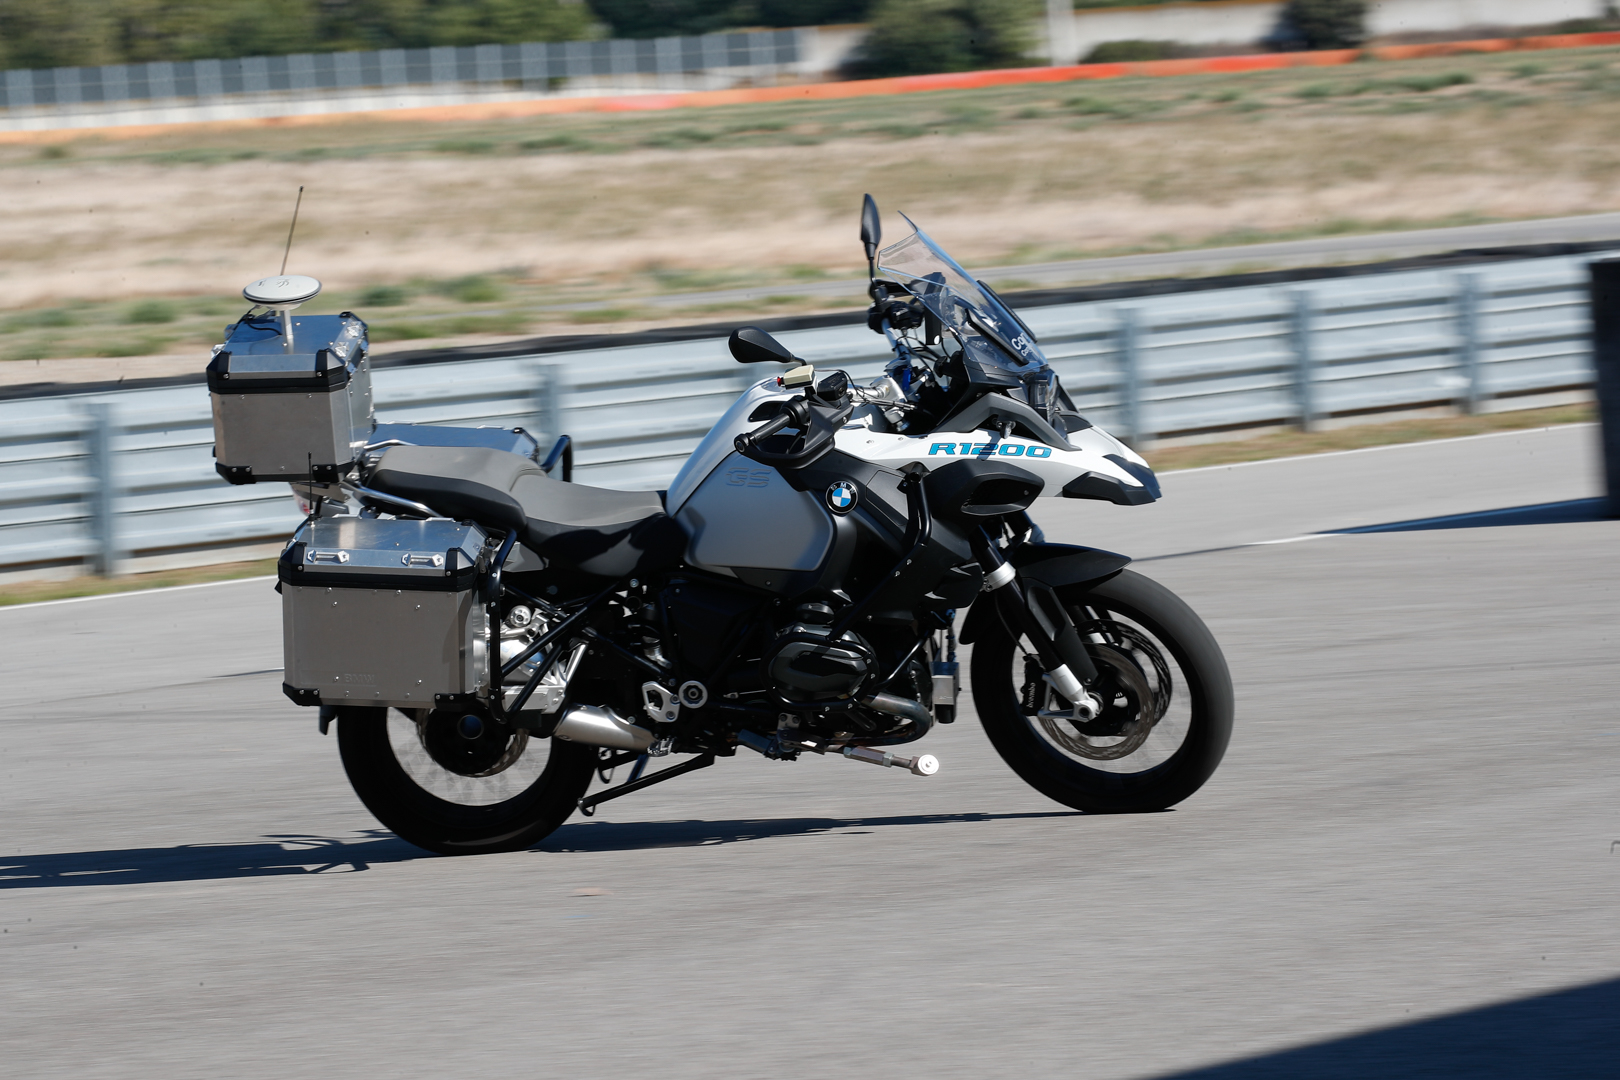 BMW made a self-driving motorcycle that you can't buy